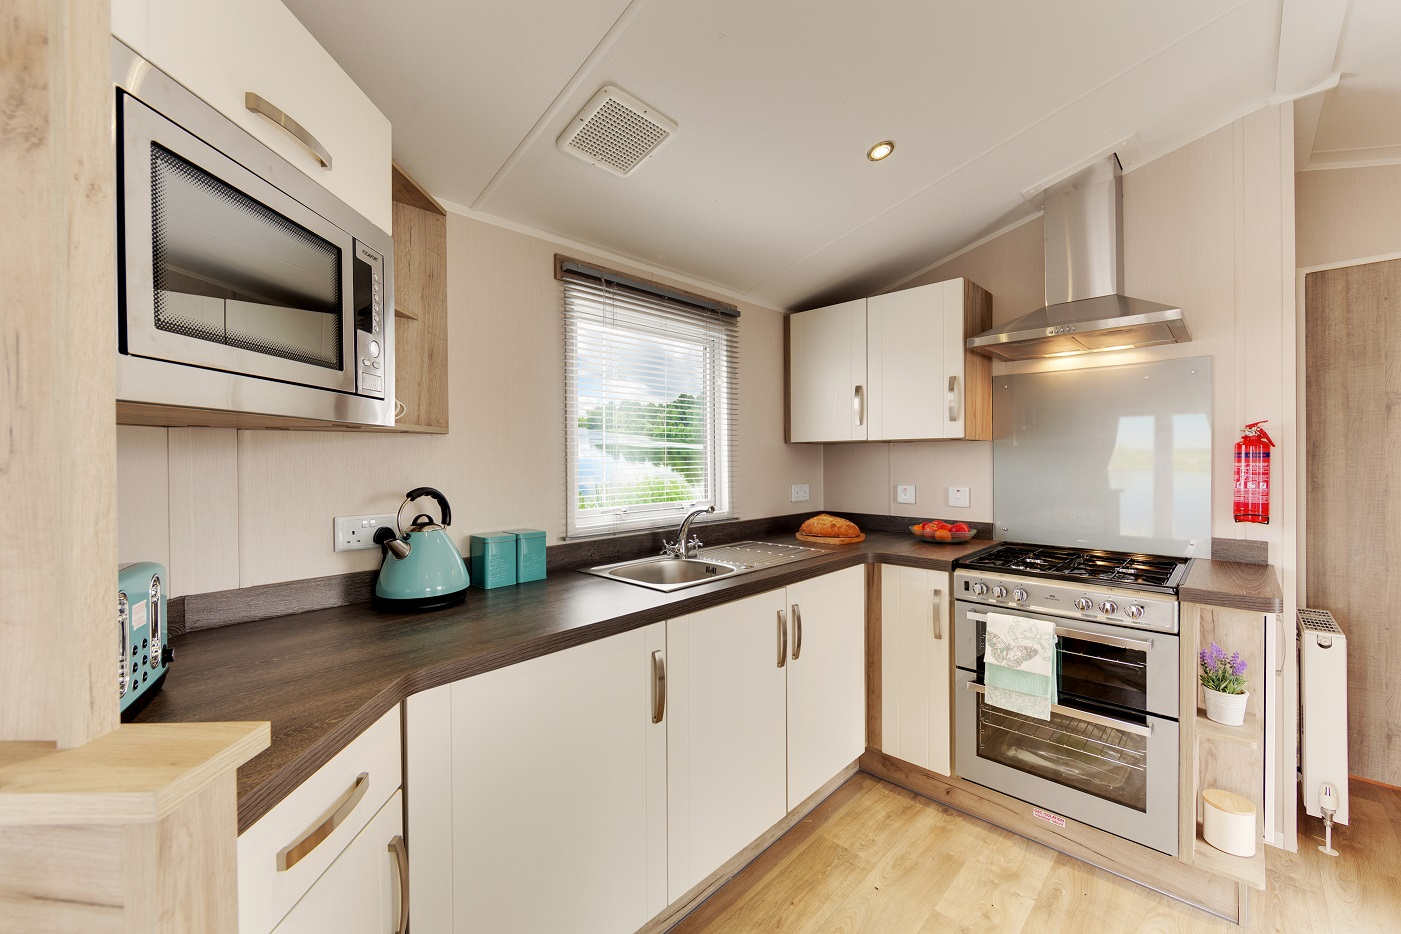 Willerby Skye - 3 Bedrooms: New Static Caravans and Holiday Homes for Sale, Clifton, Morpeth Large Image 3